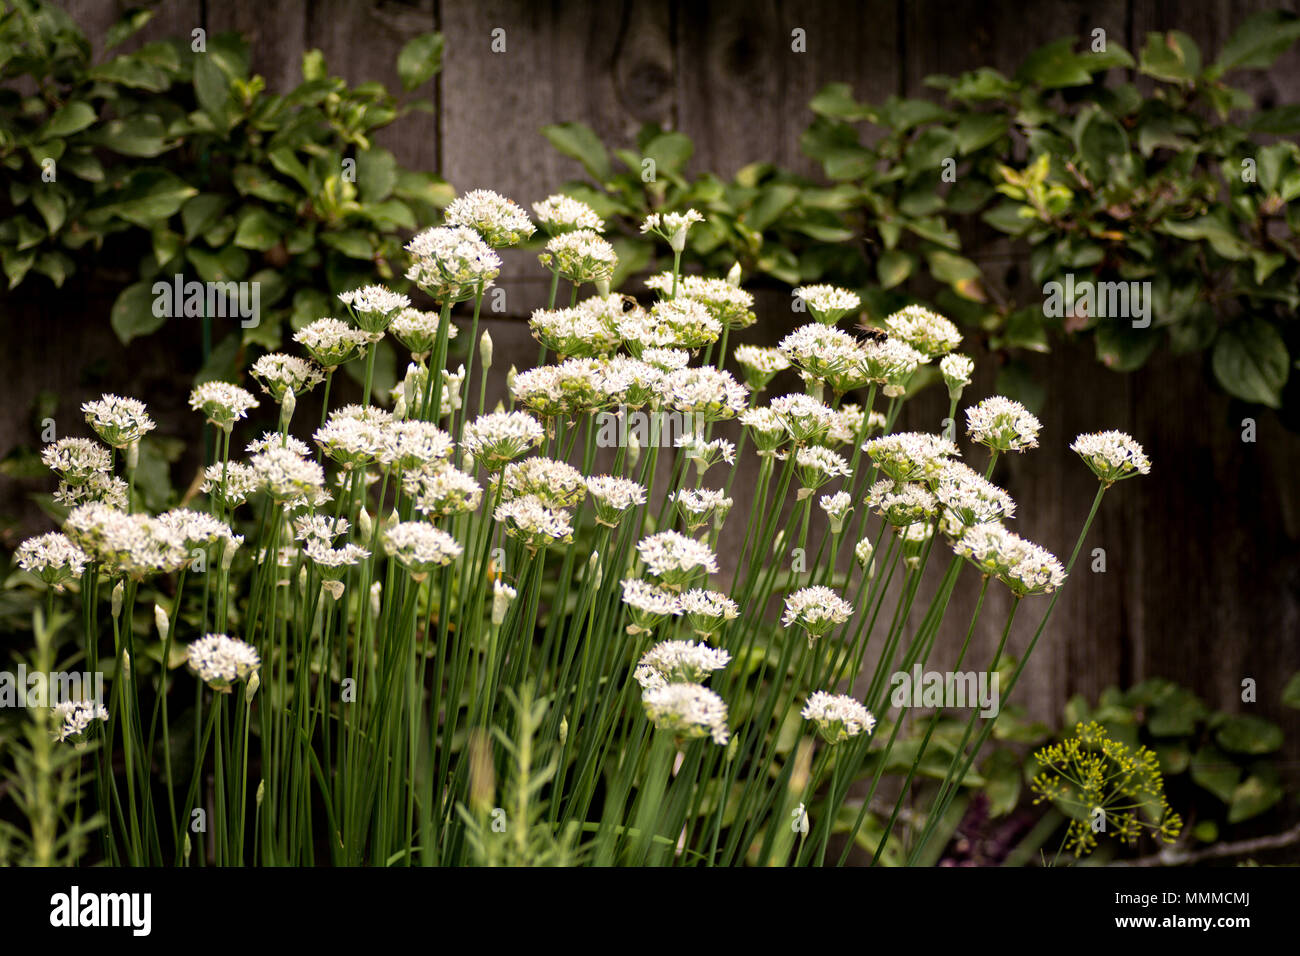 White Flowers Along A Wooden Fence In A Cottage Garden Stock Photo